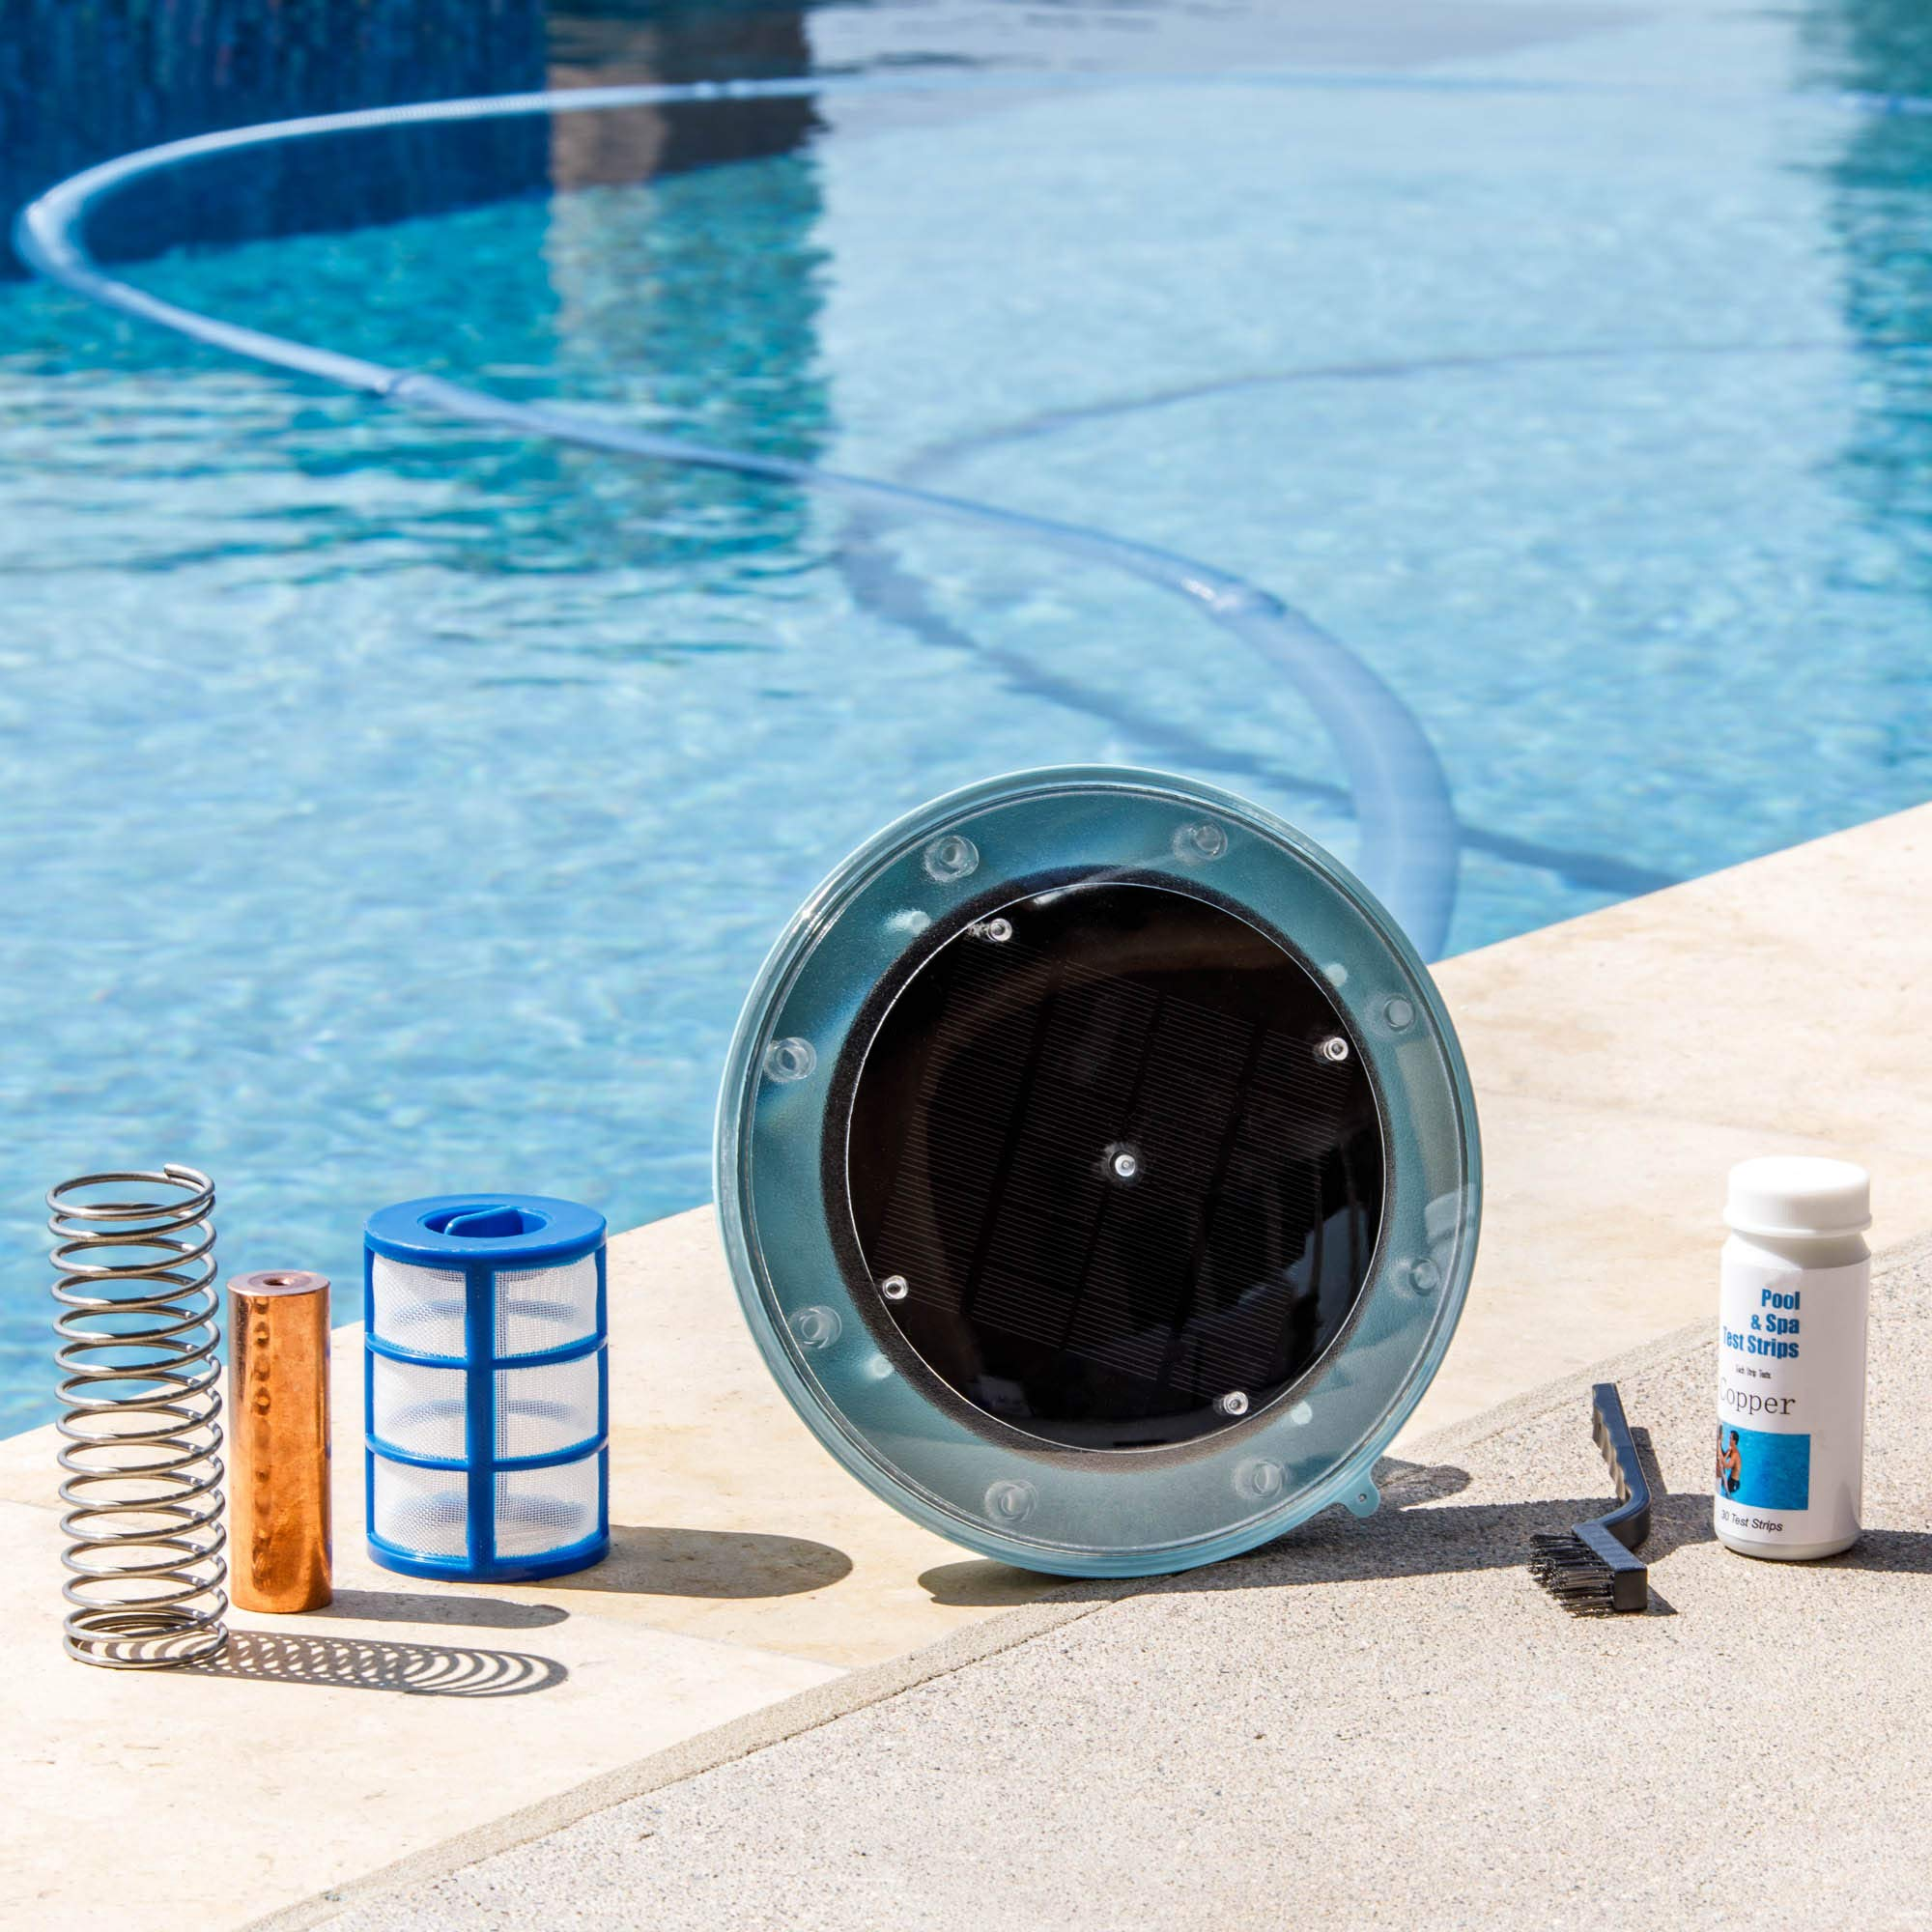 XtremepowerUS Solar Pool Purifier Pool Solar Ionizer System Chlorine Effective up to 32,000 Gallons Reduces Chlorine Algae by XtremepowerUS